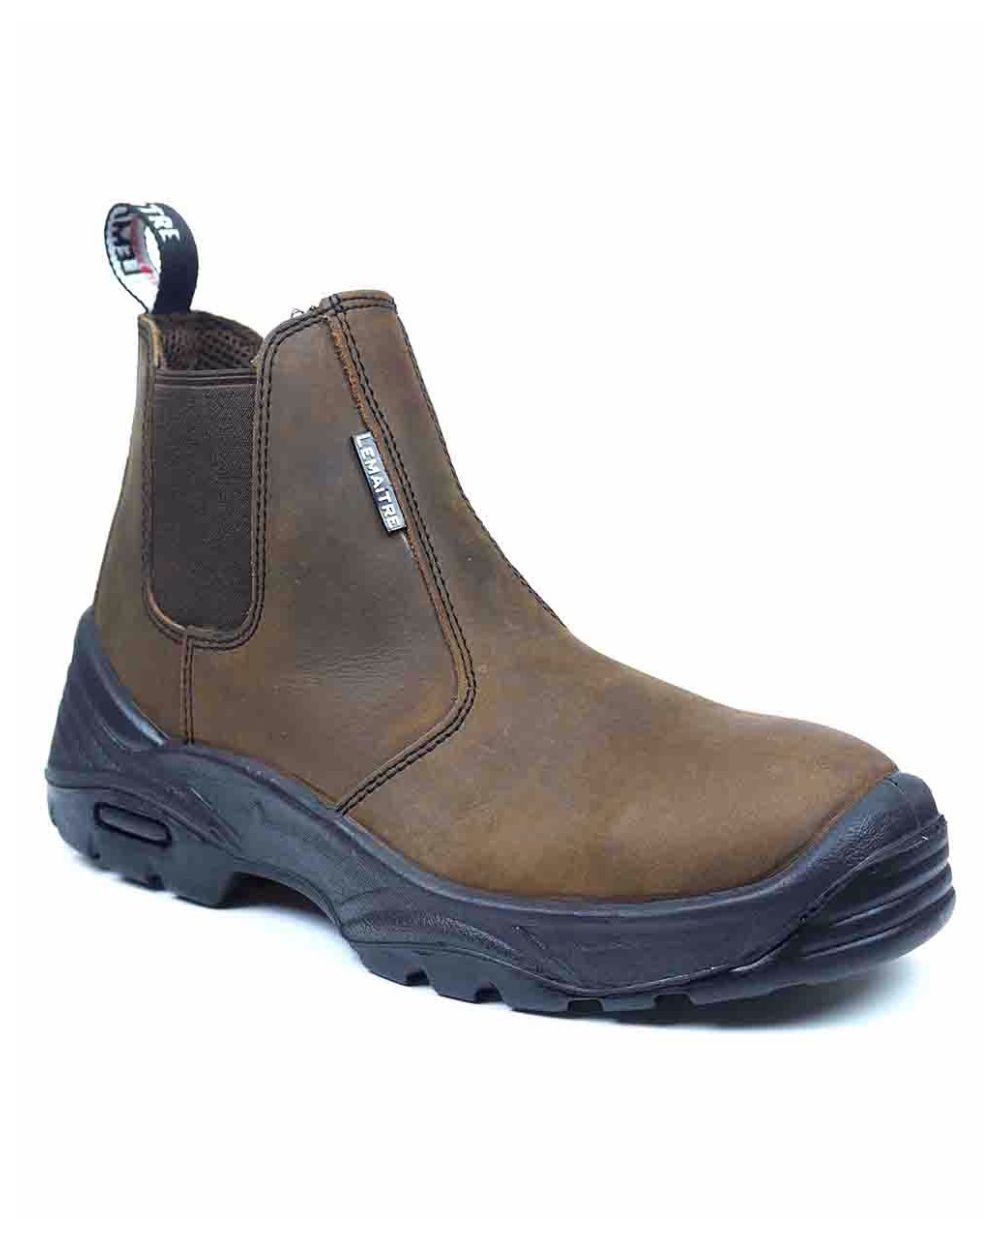 Ferme Parabolic Dealer Boot - Brown